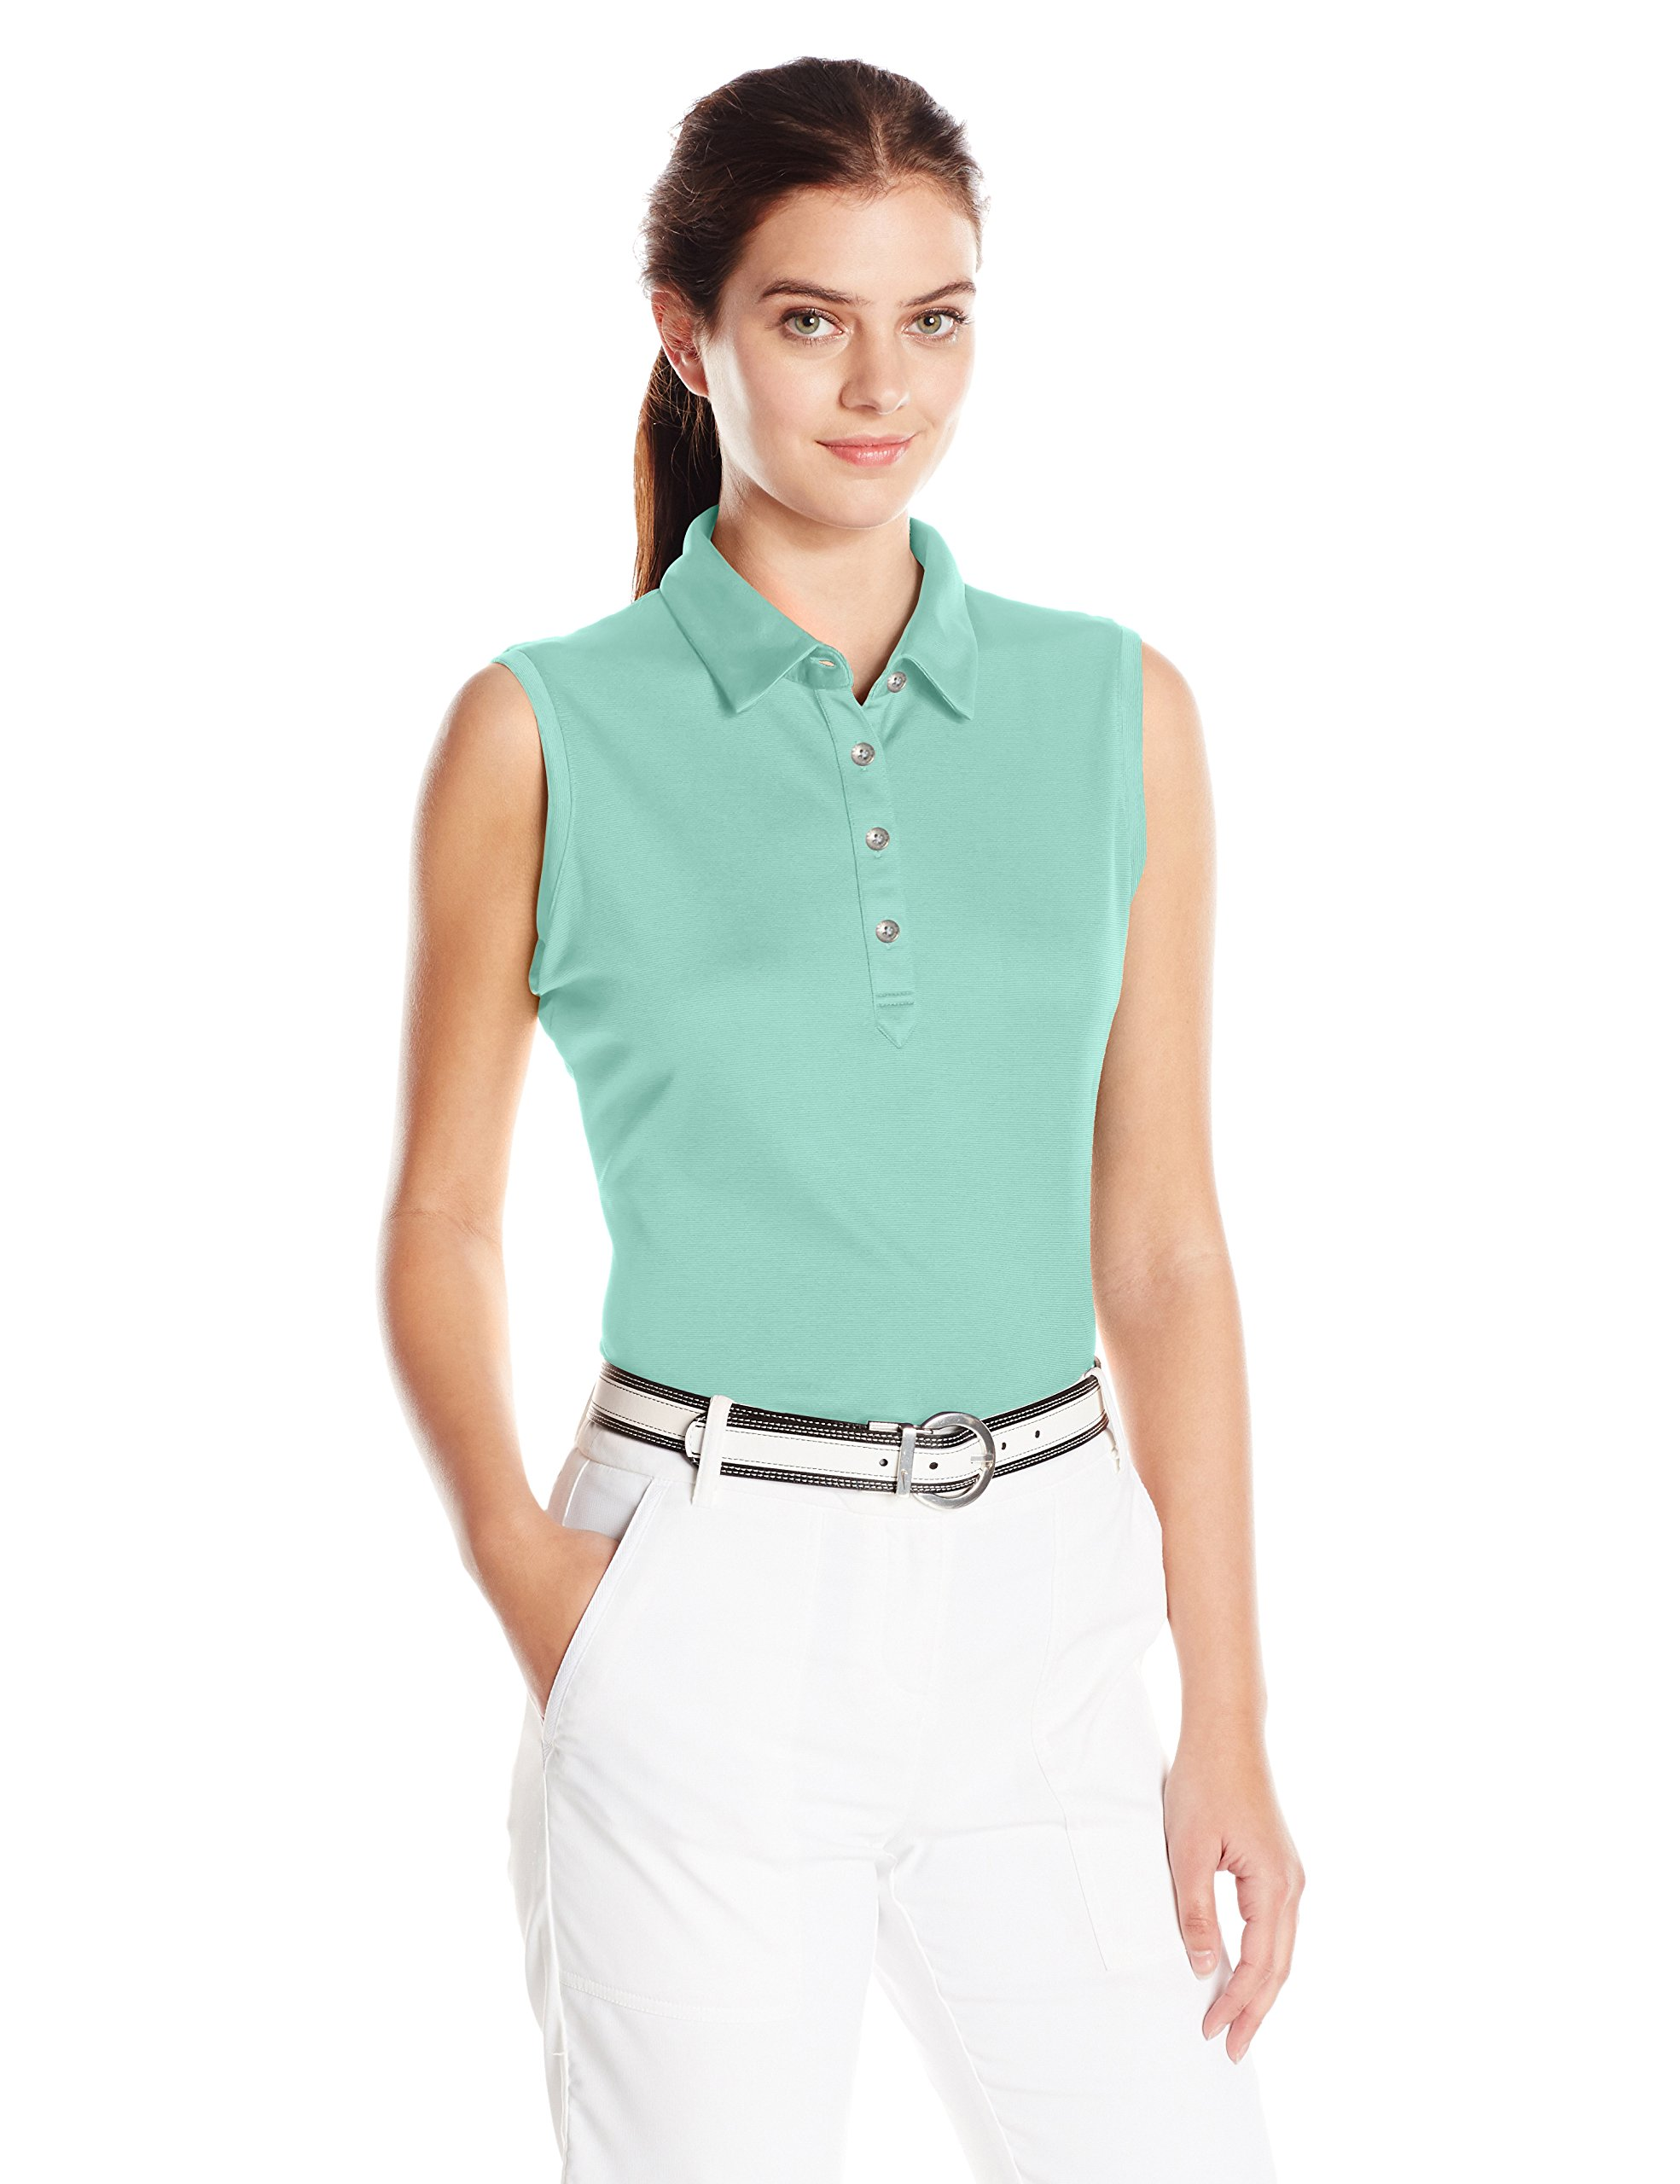 Cutter & Buck Women's Moisture Wicking, UPF 50+, Sleeveless Clare Polo Shirt, Sea Glass S